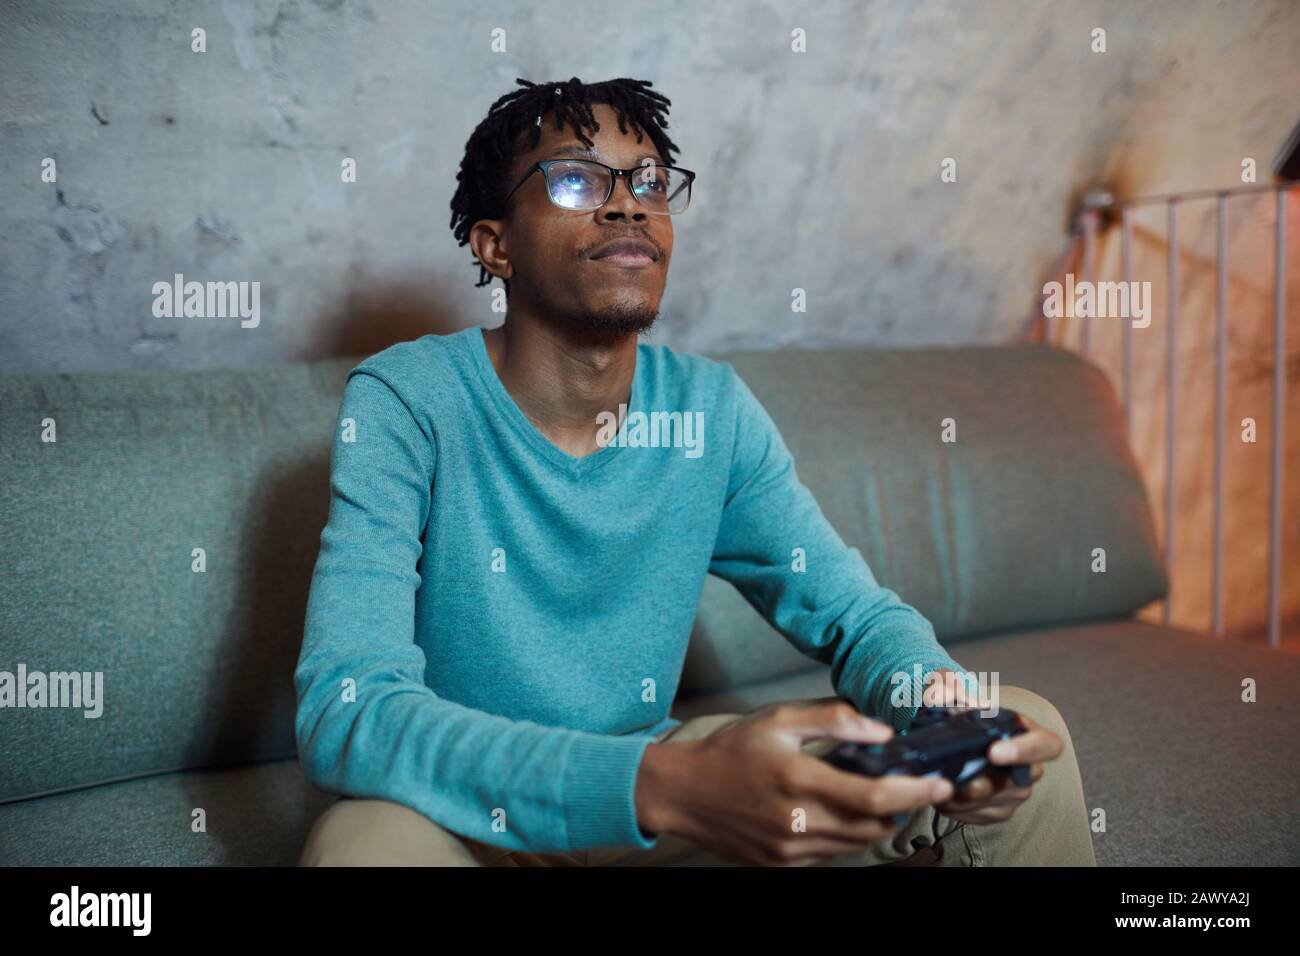 Portrait of smiling African-American man playing videogames via gaming console, copy space Stock Photo